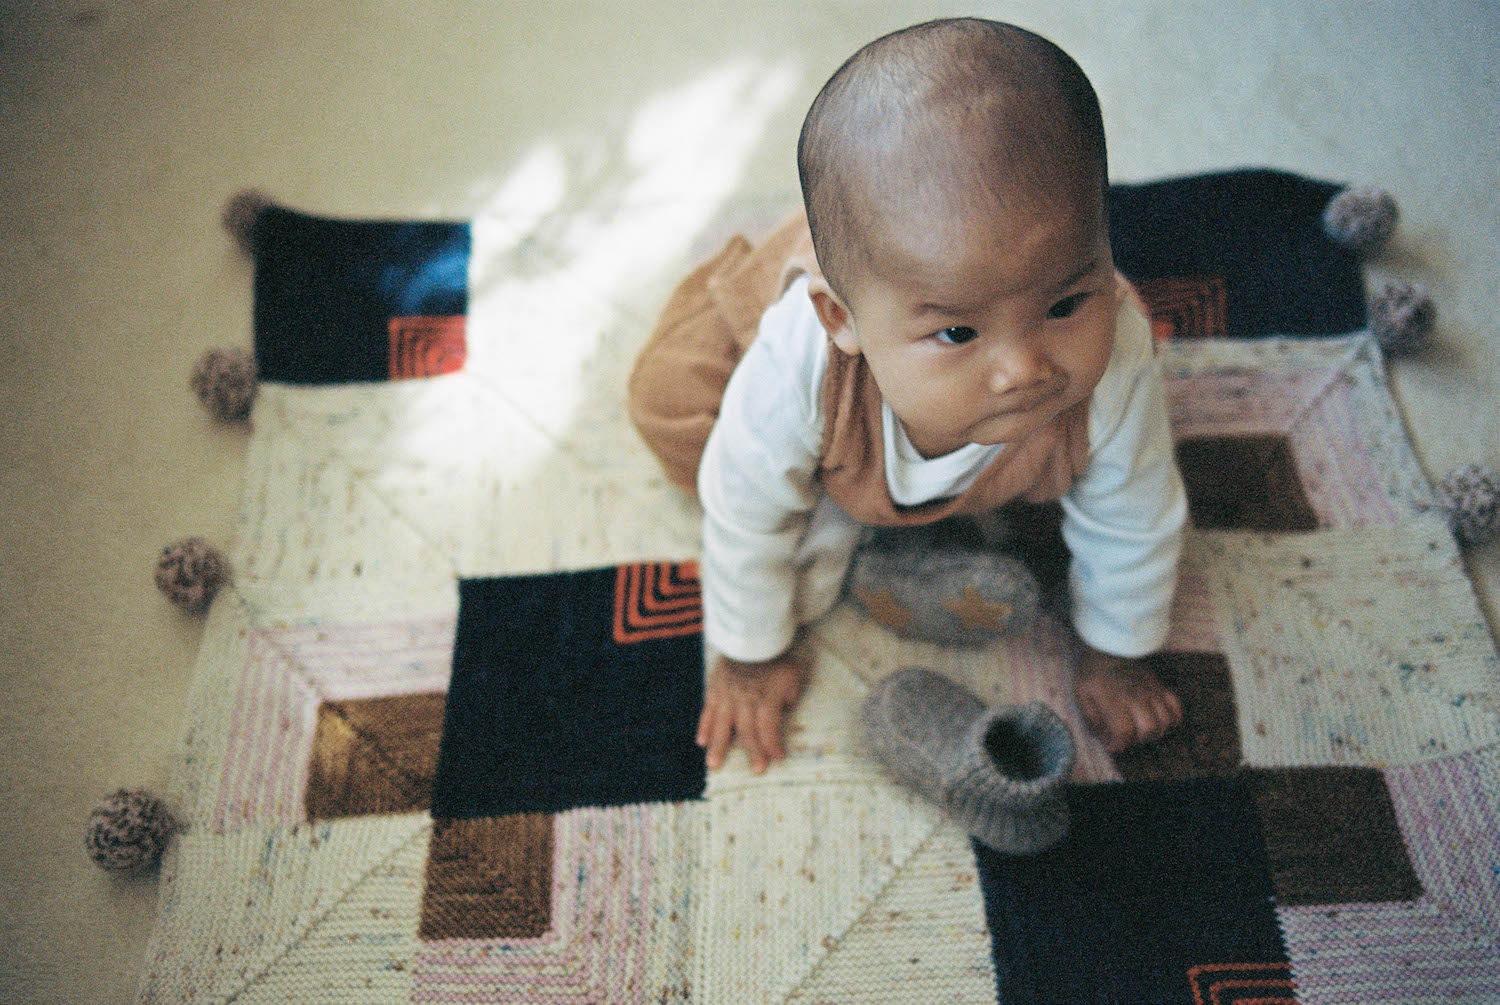 A mix of dappled light, baby Alexa and her missing woollen slipper captured on 35mm film.